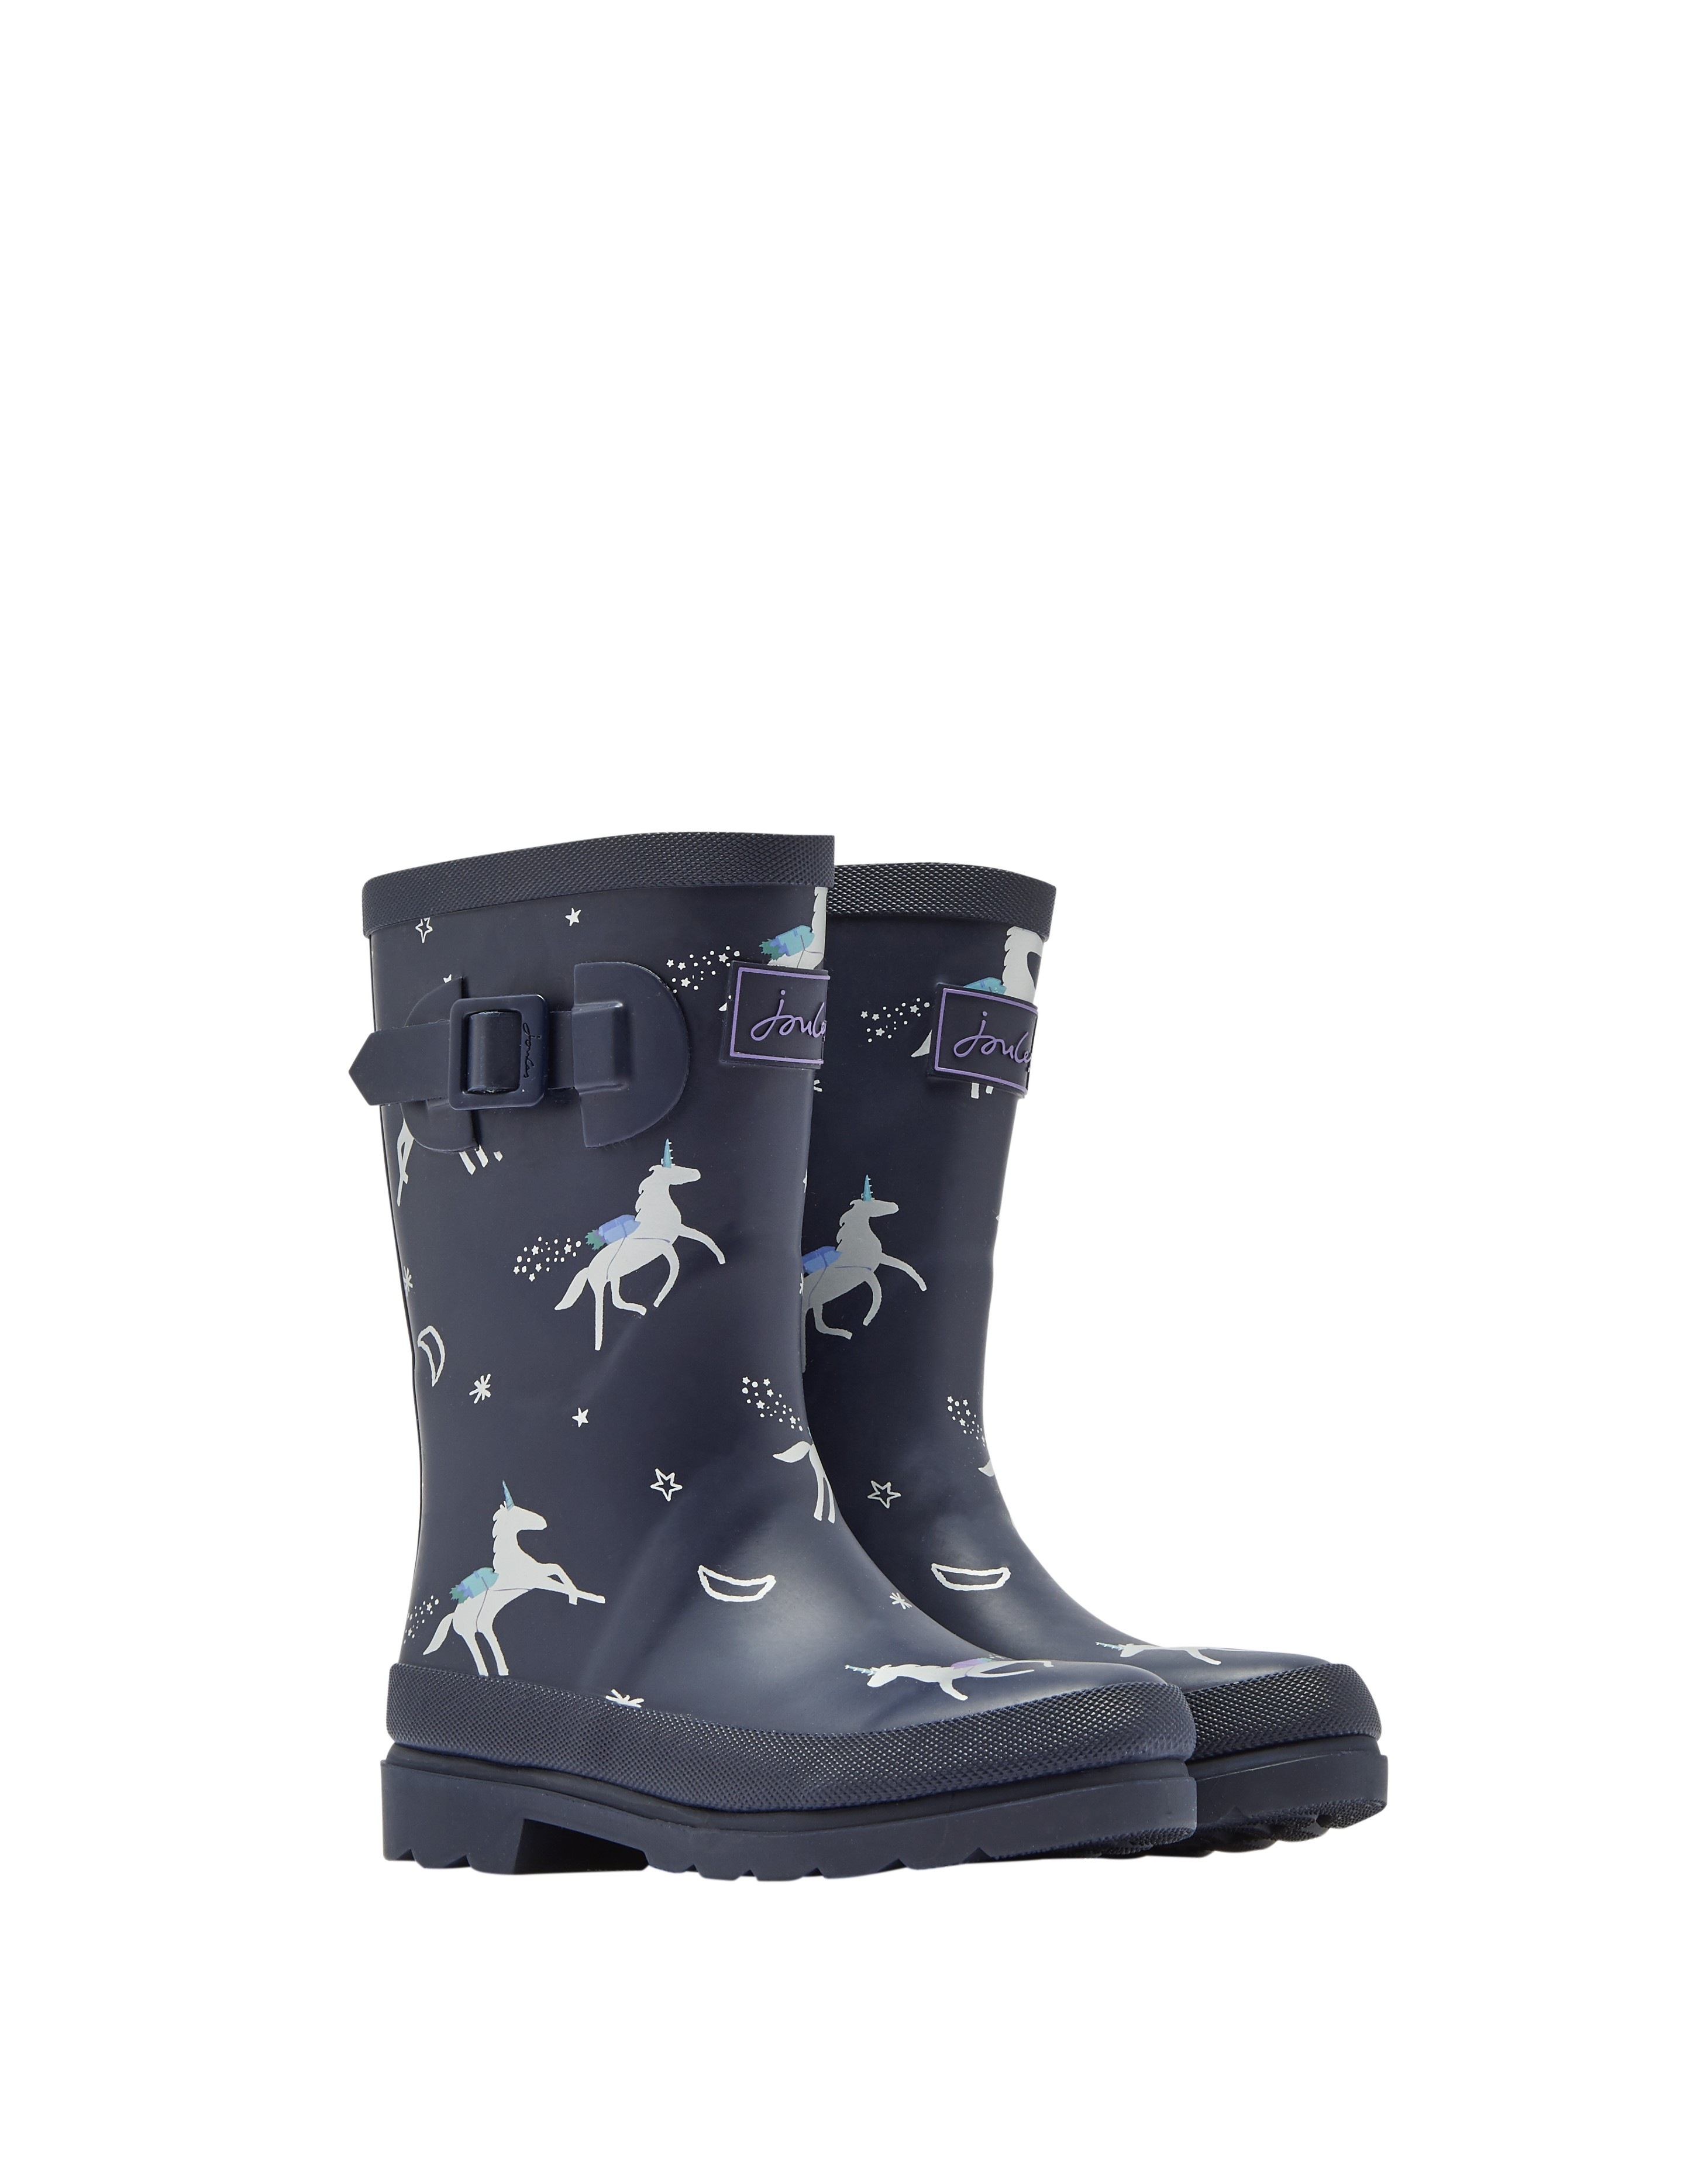 Joules Junior Print Wellingtons  - Thomas Irving's equestrian and accessories store  Joules Junior Print Wellingtons